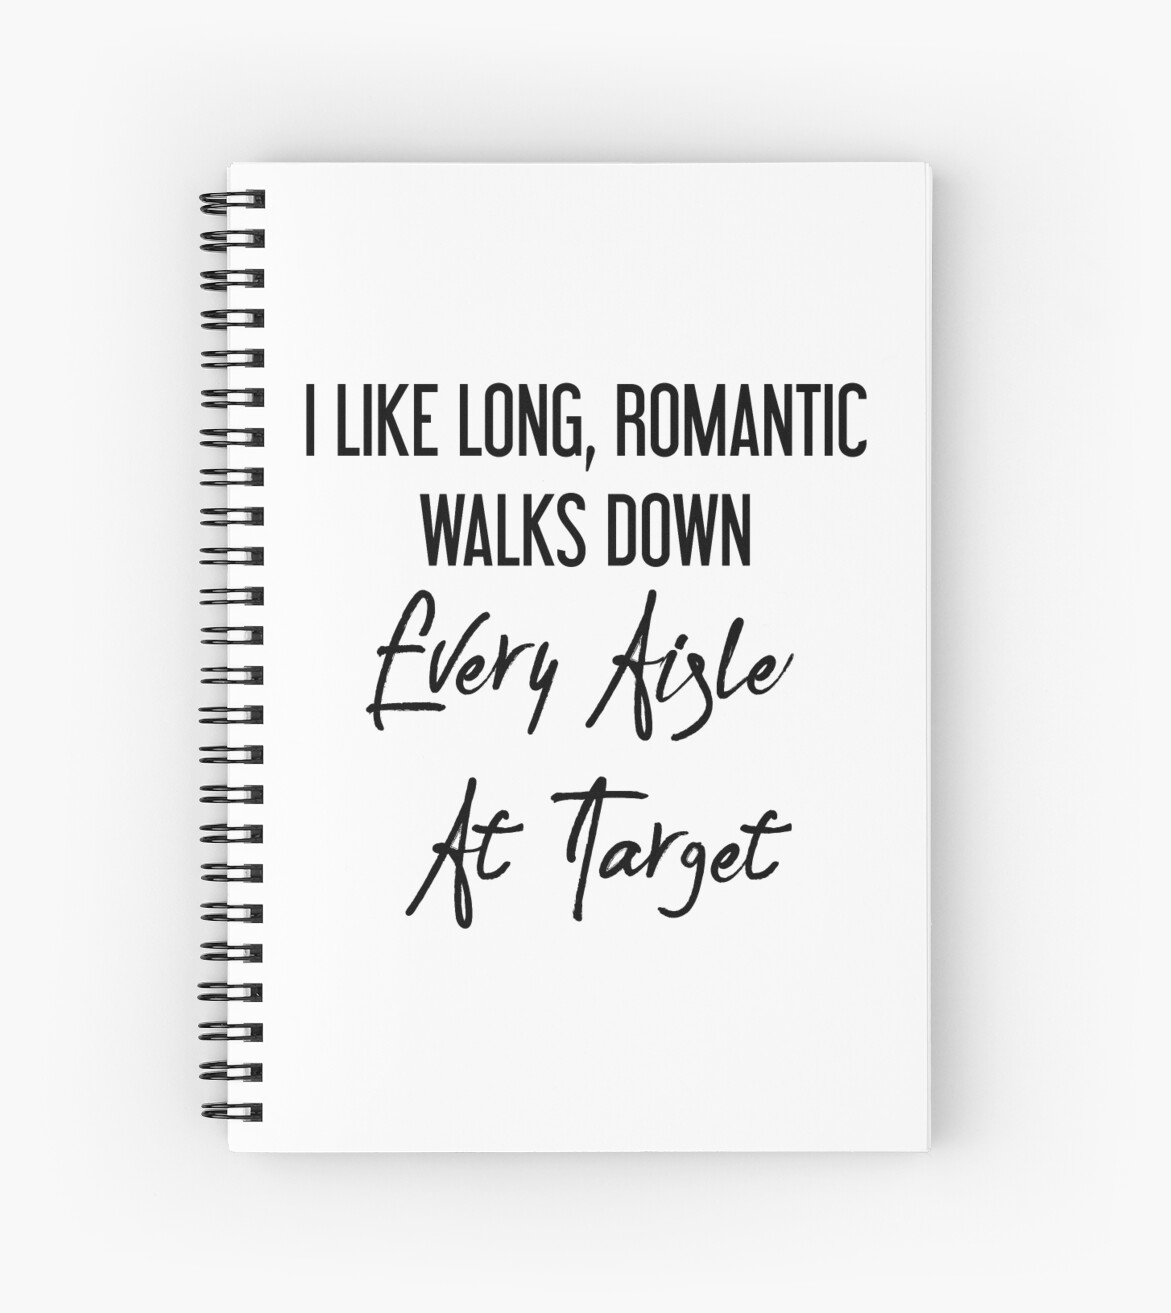 I Like Long, Romantic Walks Down Every Aisle At Target by kjanedesigns